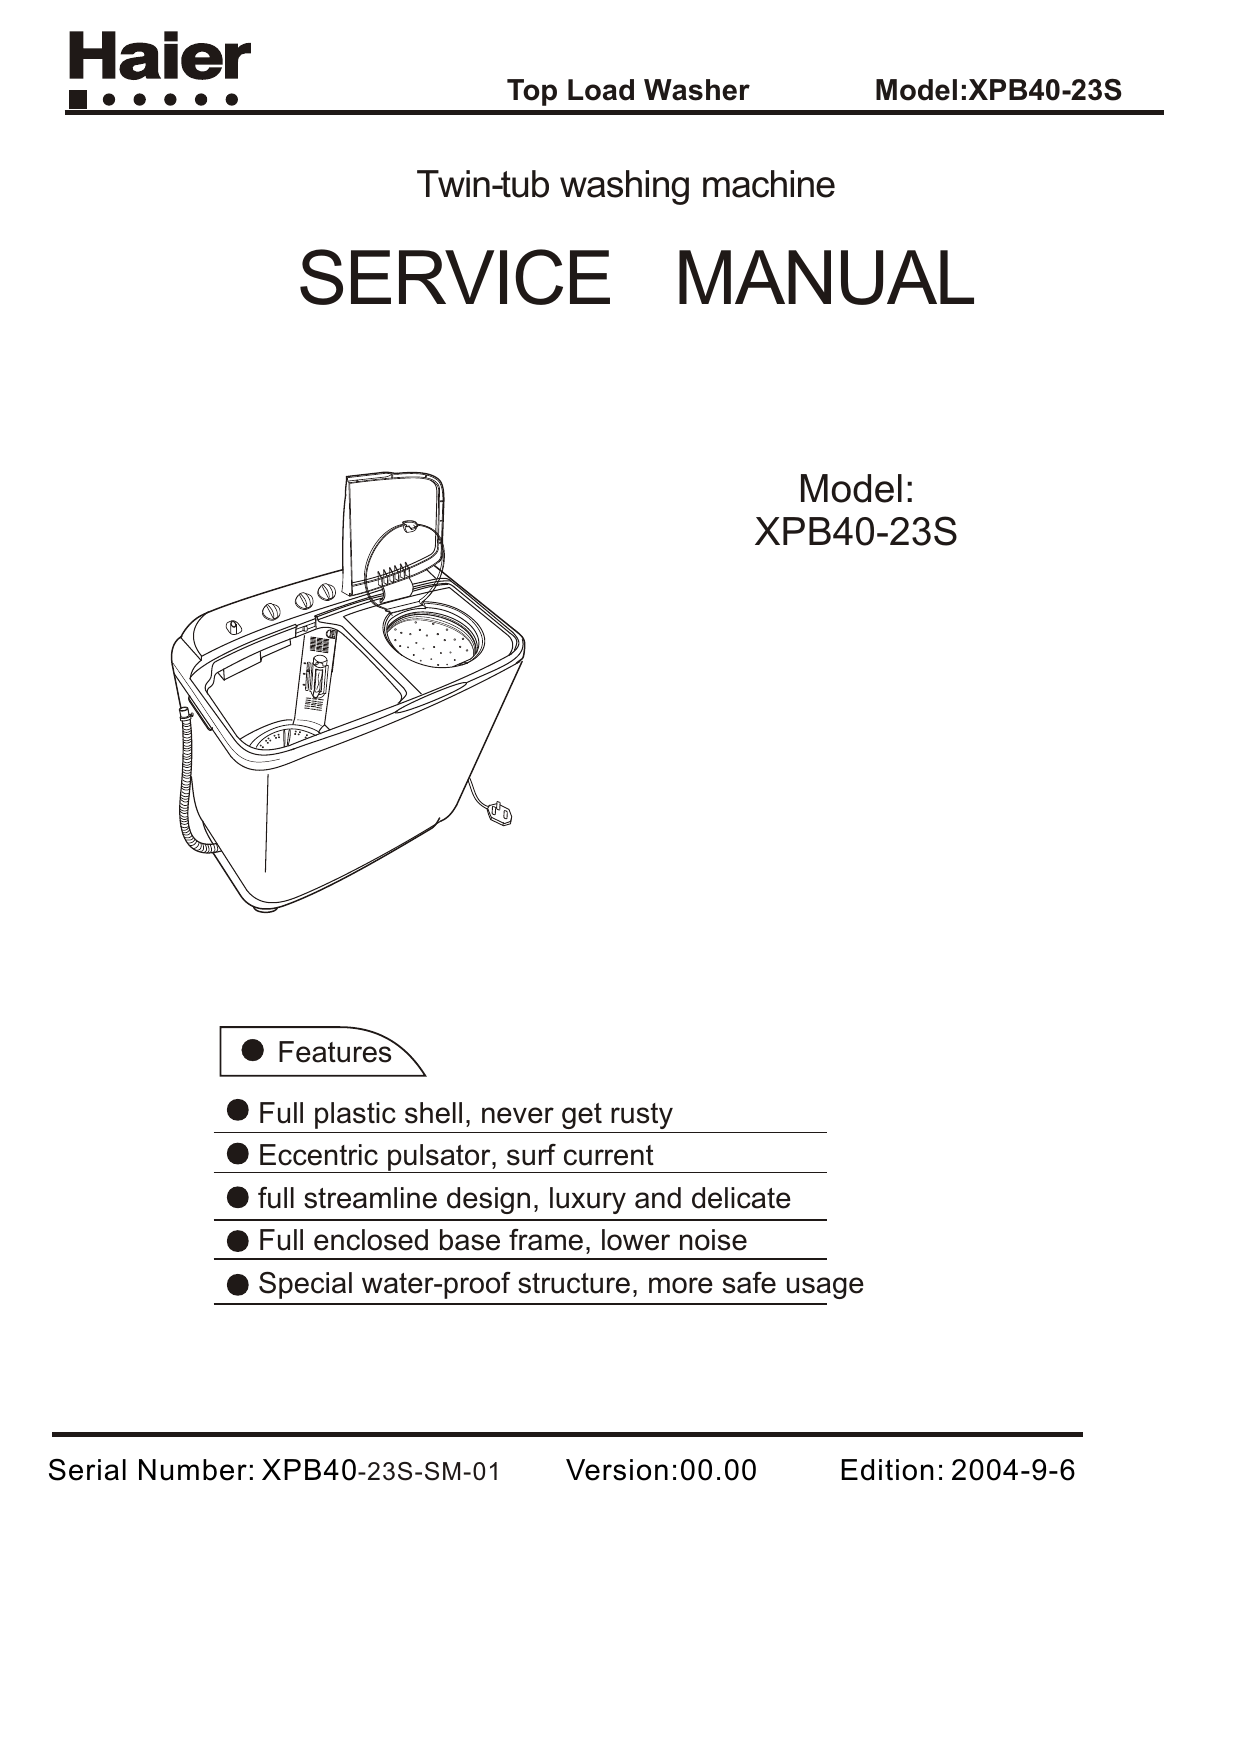 hight resolution of top load washer model xpb40 23s twin tub washing machine service manual model contents xpb40 23s 1